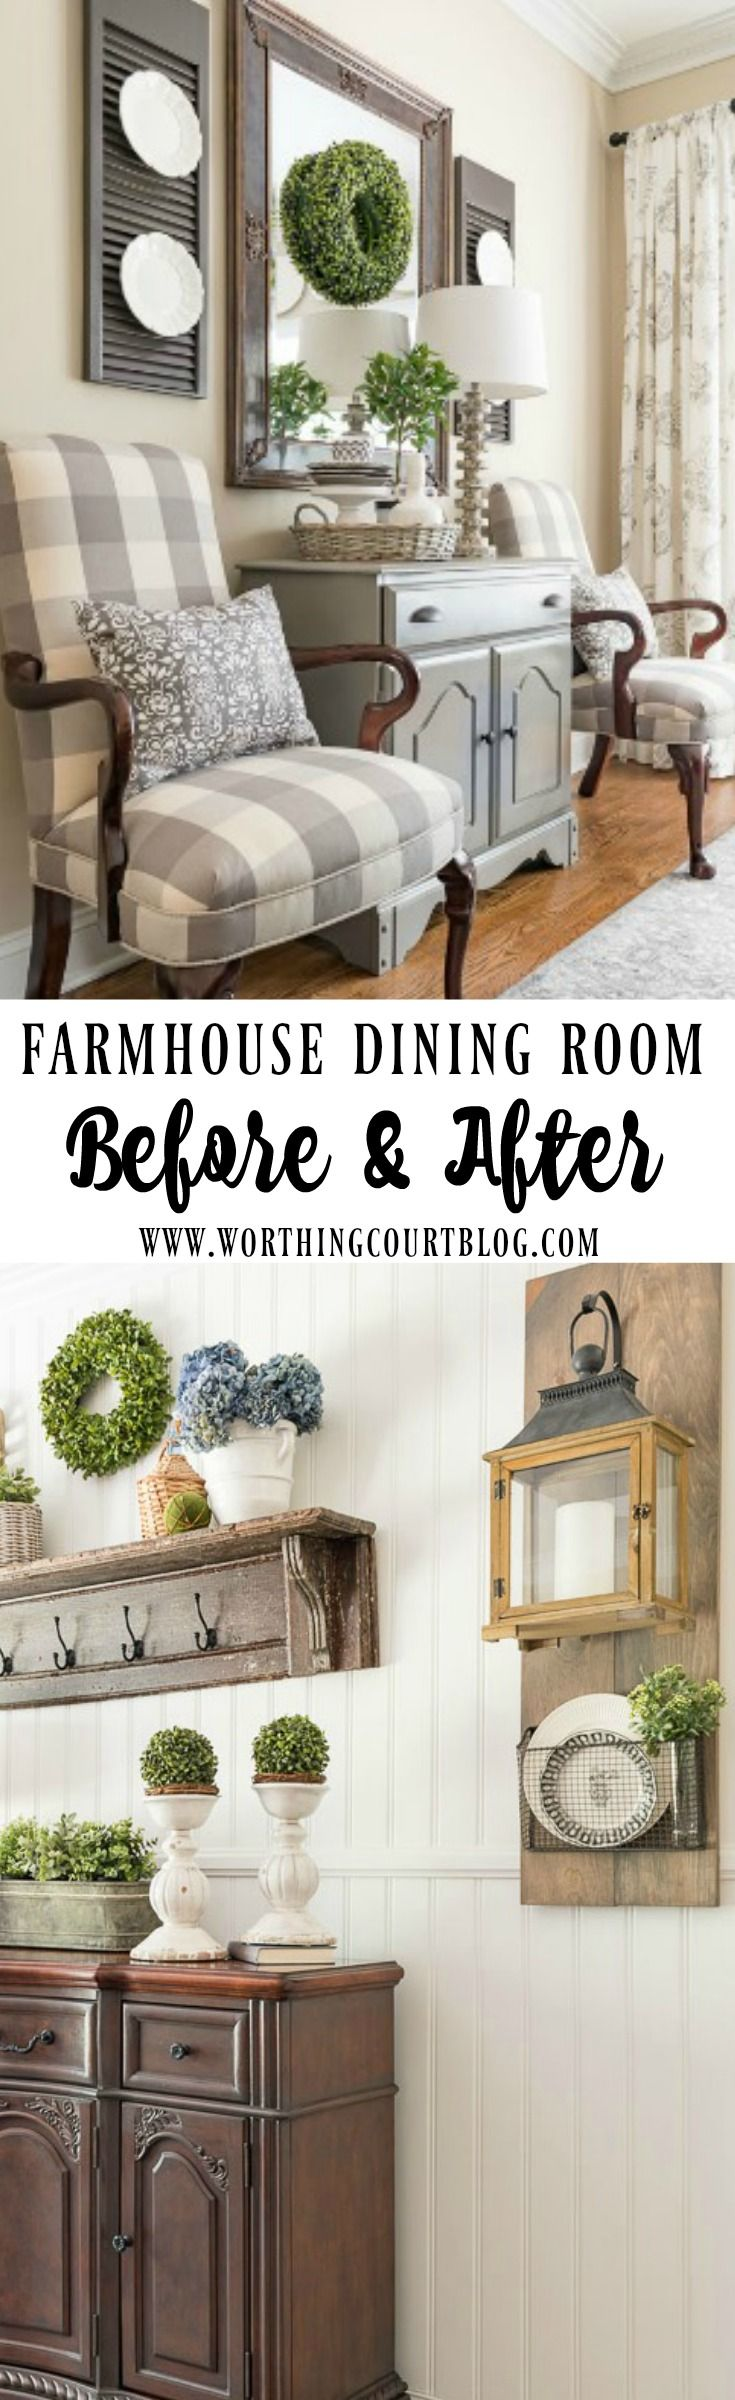 Best 25 Farmhouse Chic Ideas Only On Pinterest